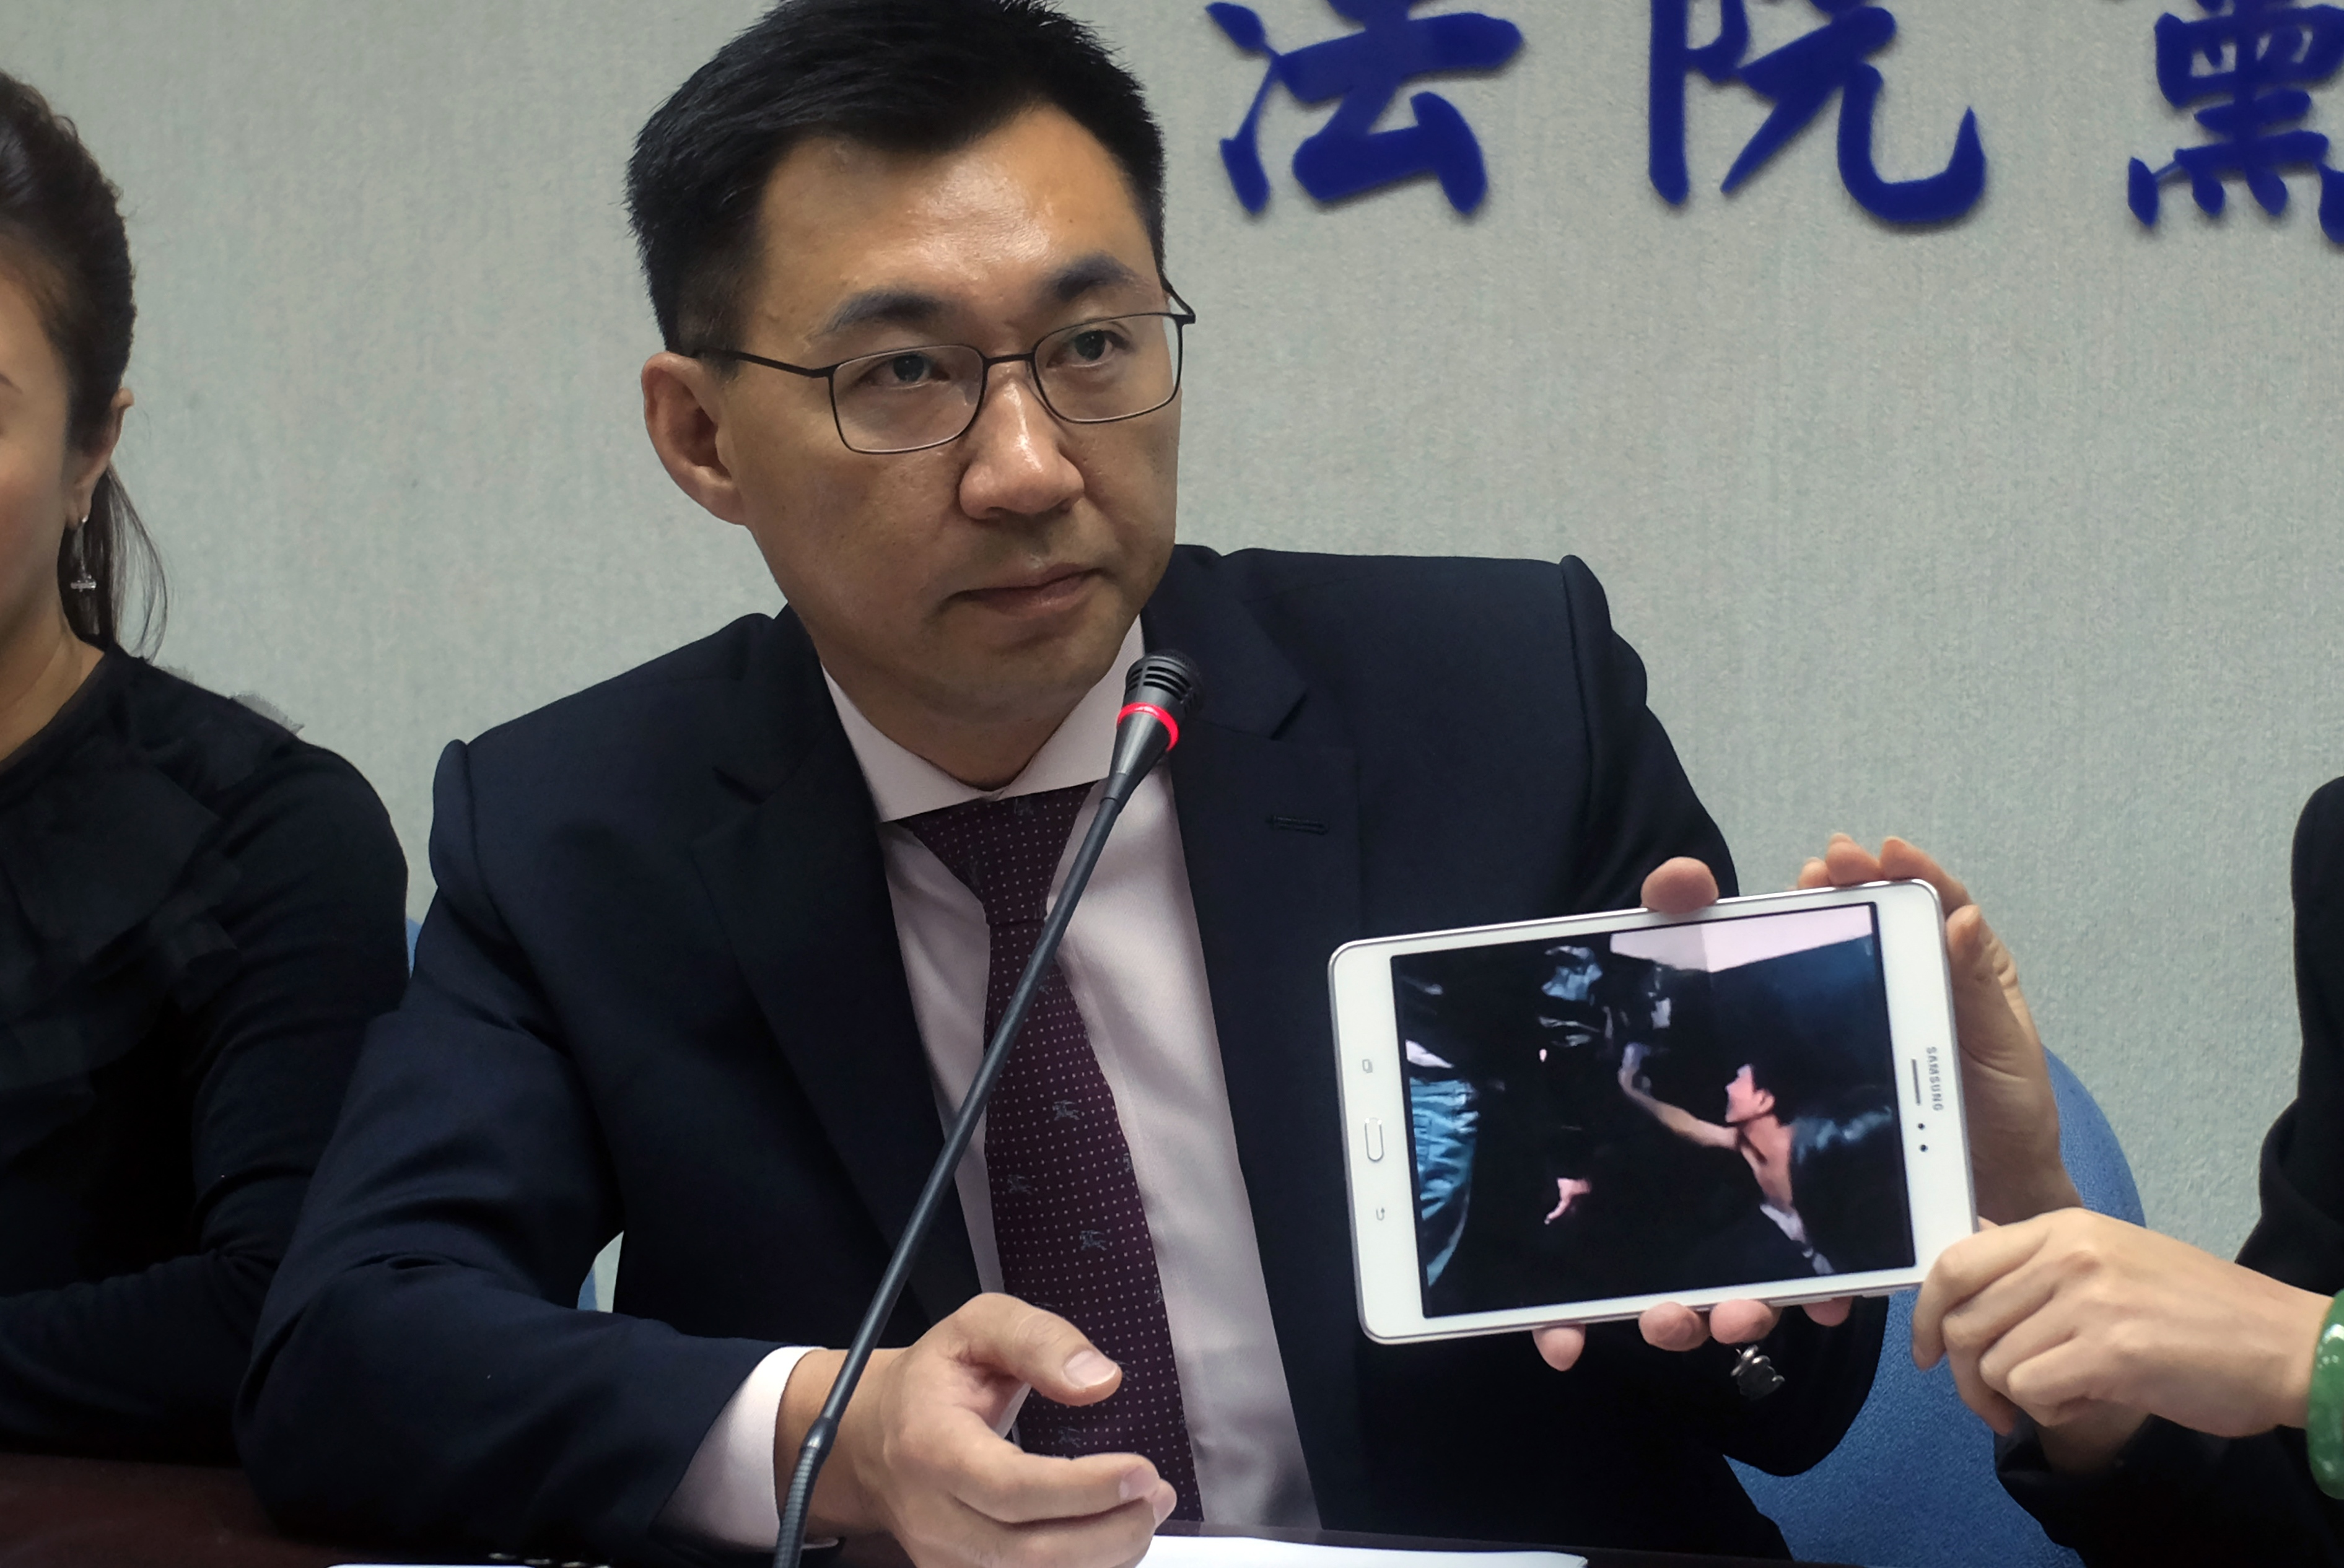 Johnny Chiang, a legislator from the Kuomintang  party, displays a video clip showing Taiwanese detained at a police station in Kenya, during a press conference in Taipei on April 12, 2016